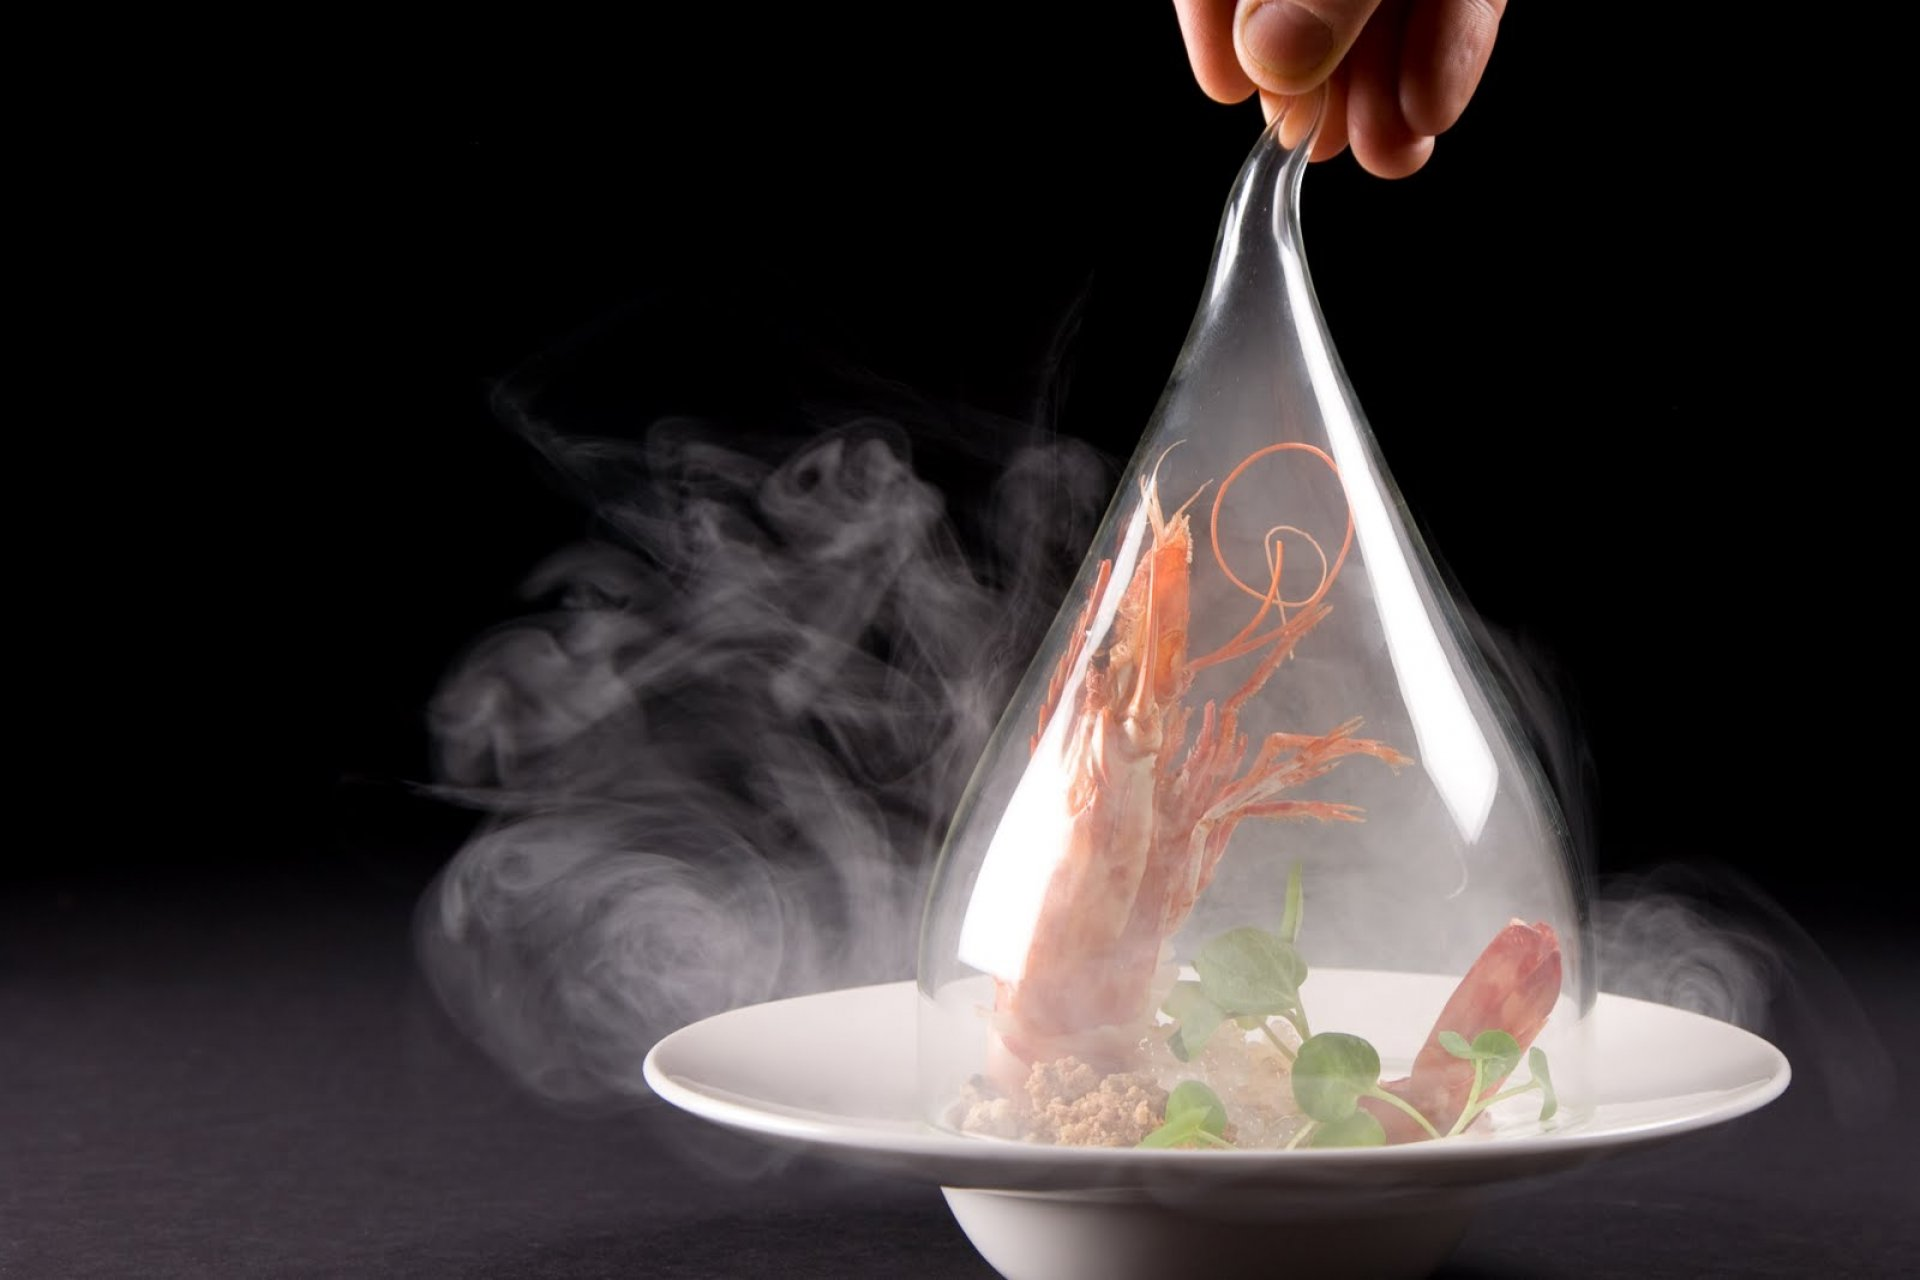 Restaurant Cuisine Moléculaire Thierry Marx The King Of Molecular Cuisine Learn More About